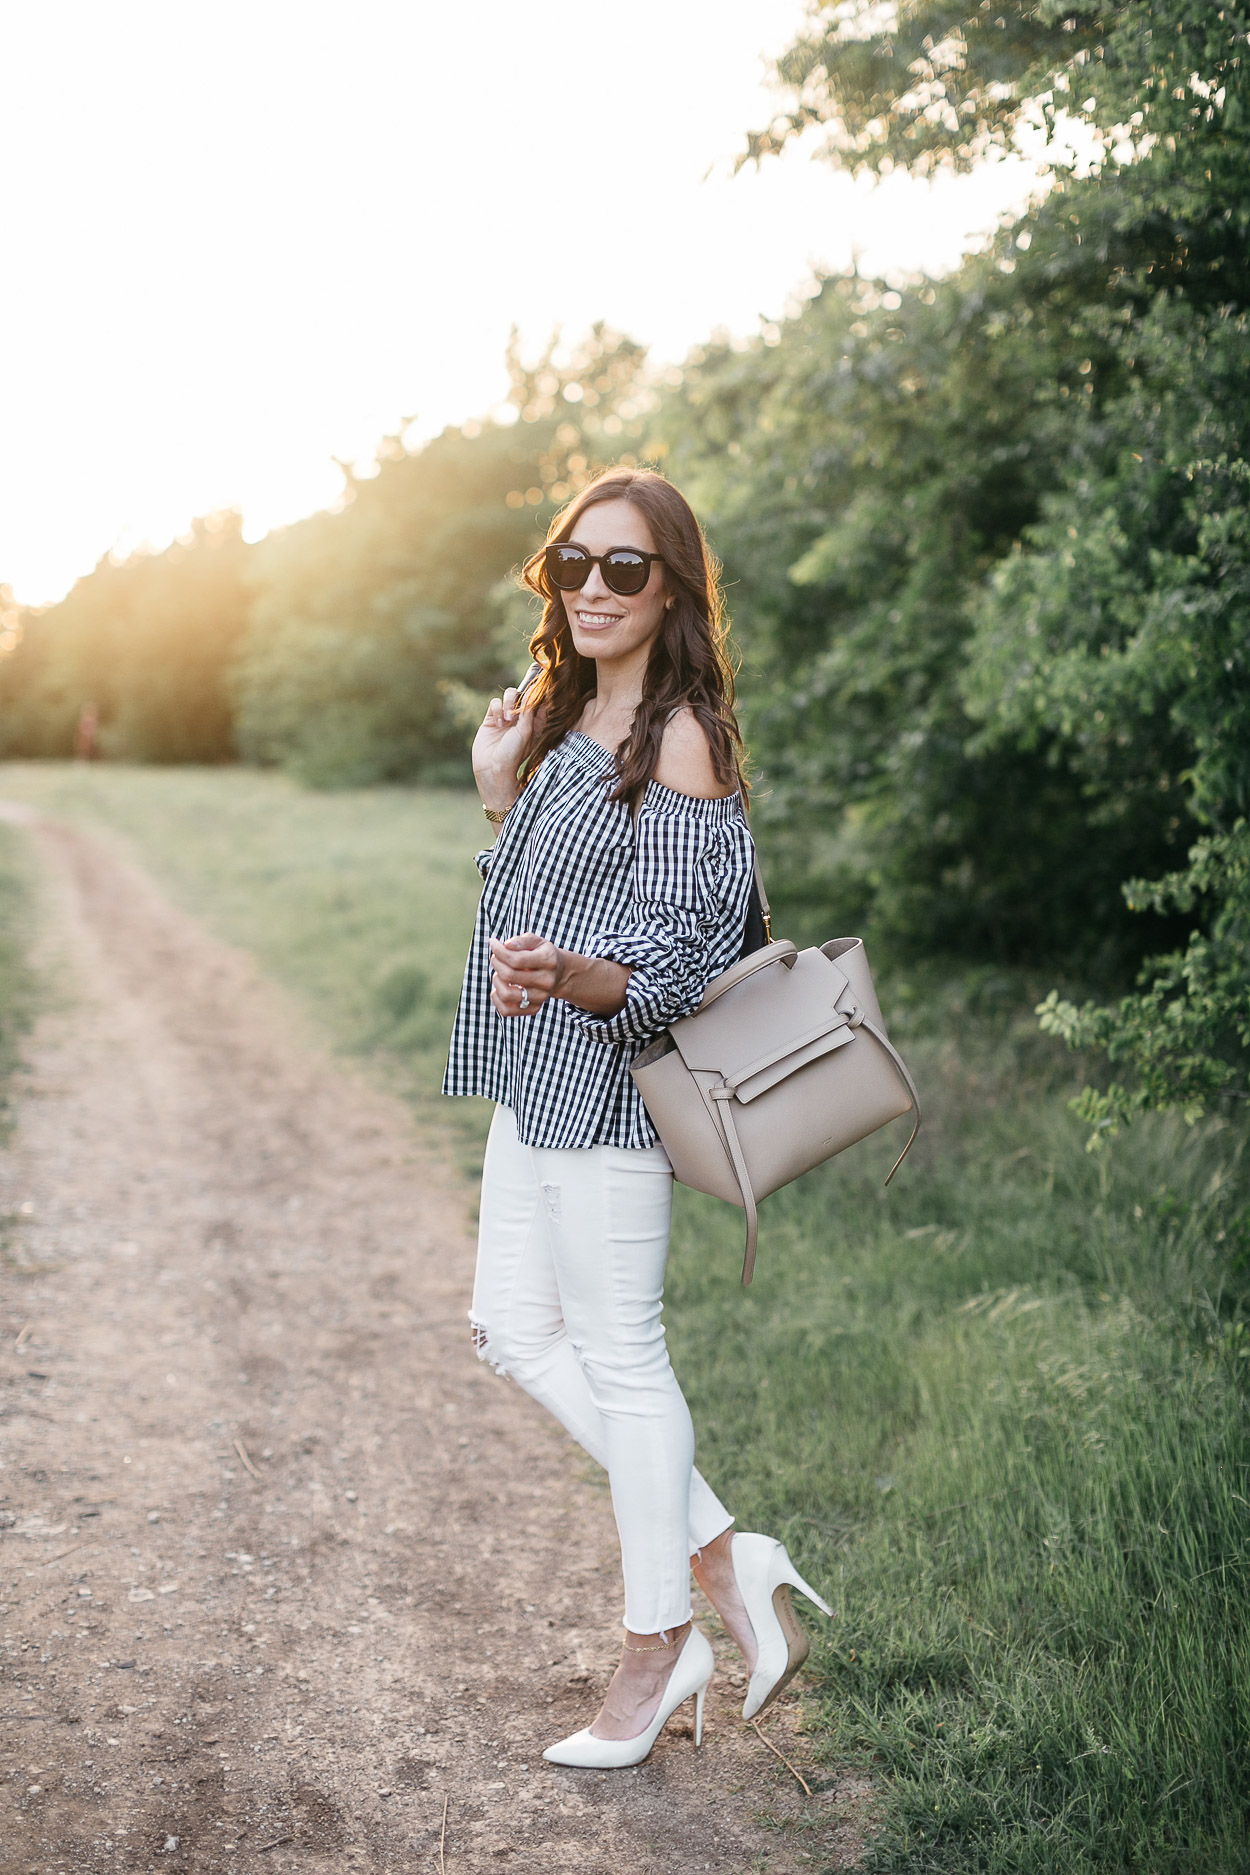 Gingham top from Chicwish worn with nude Celine Belt bag and classic white denim by Amanda of AGlamLifestyle blog